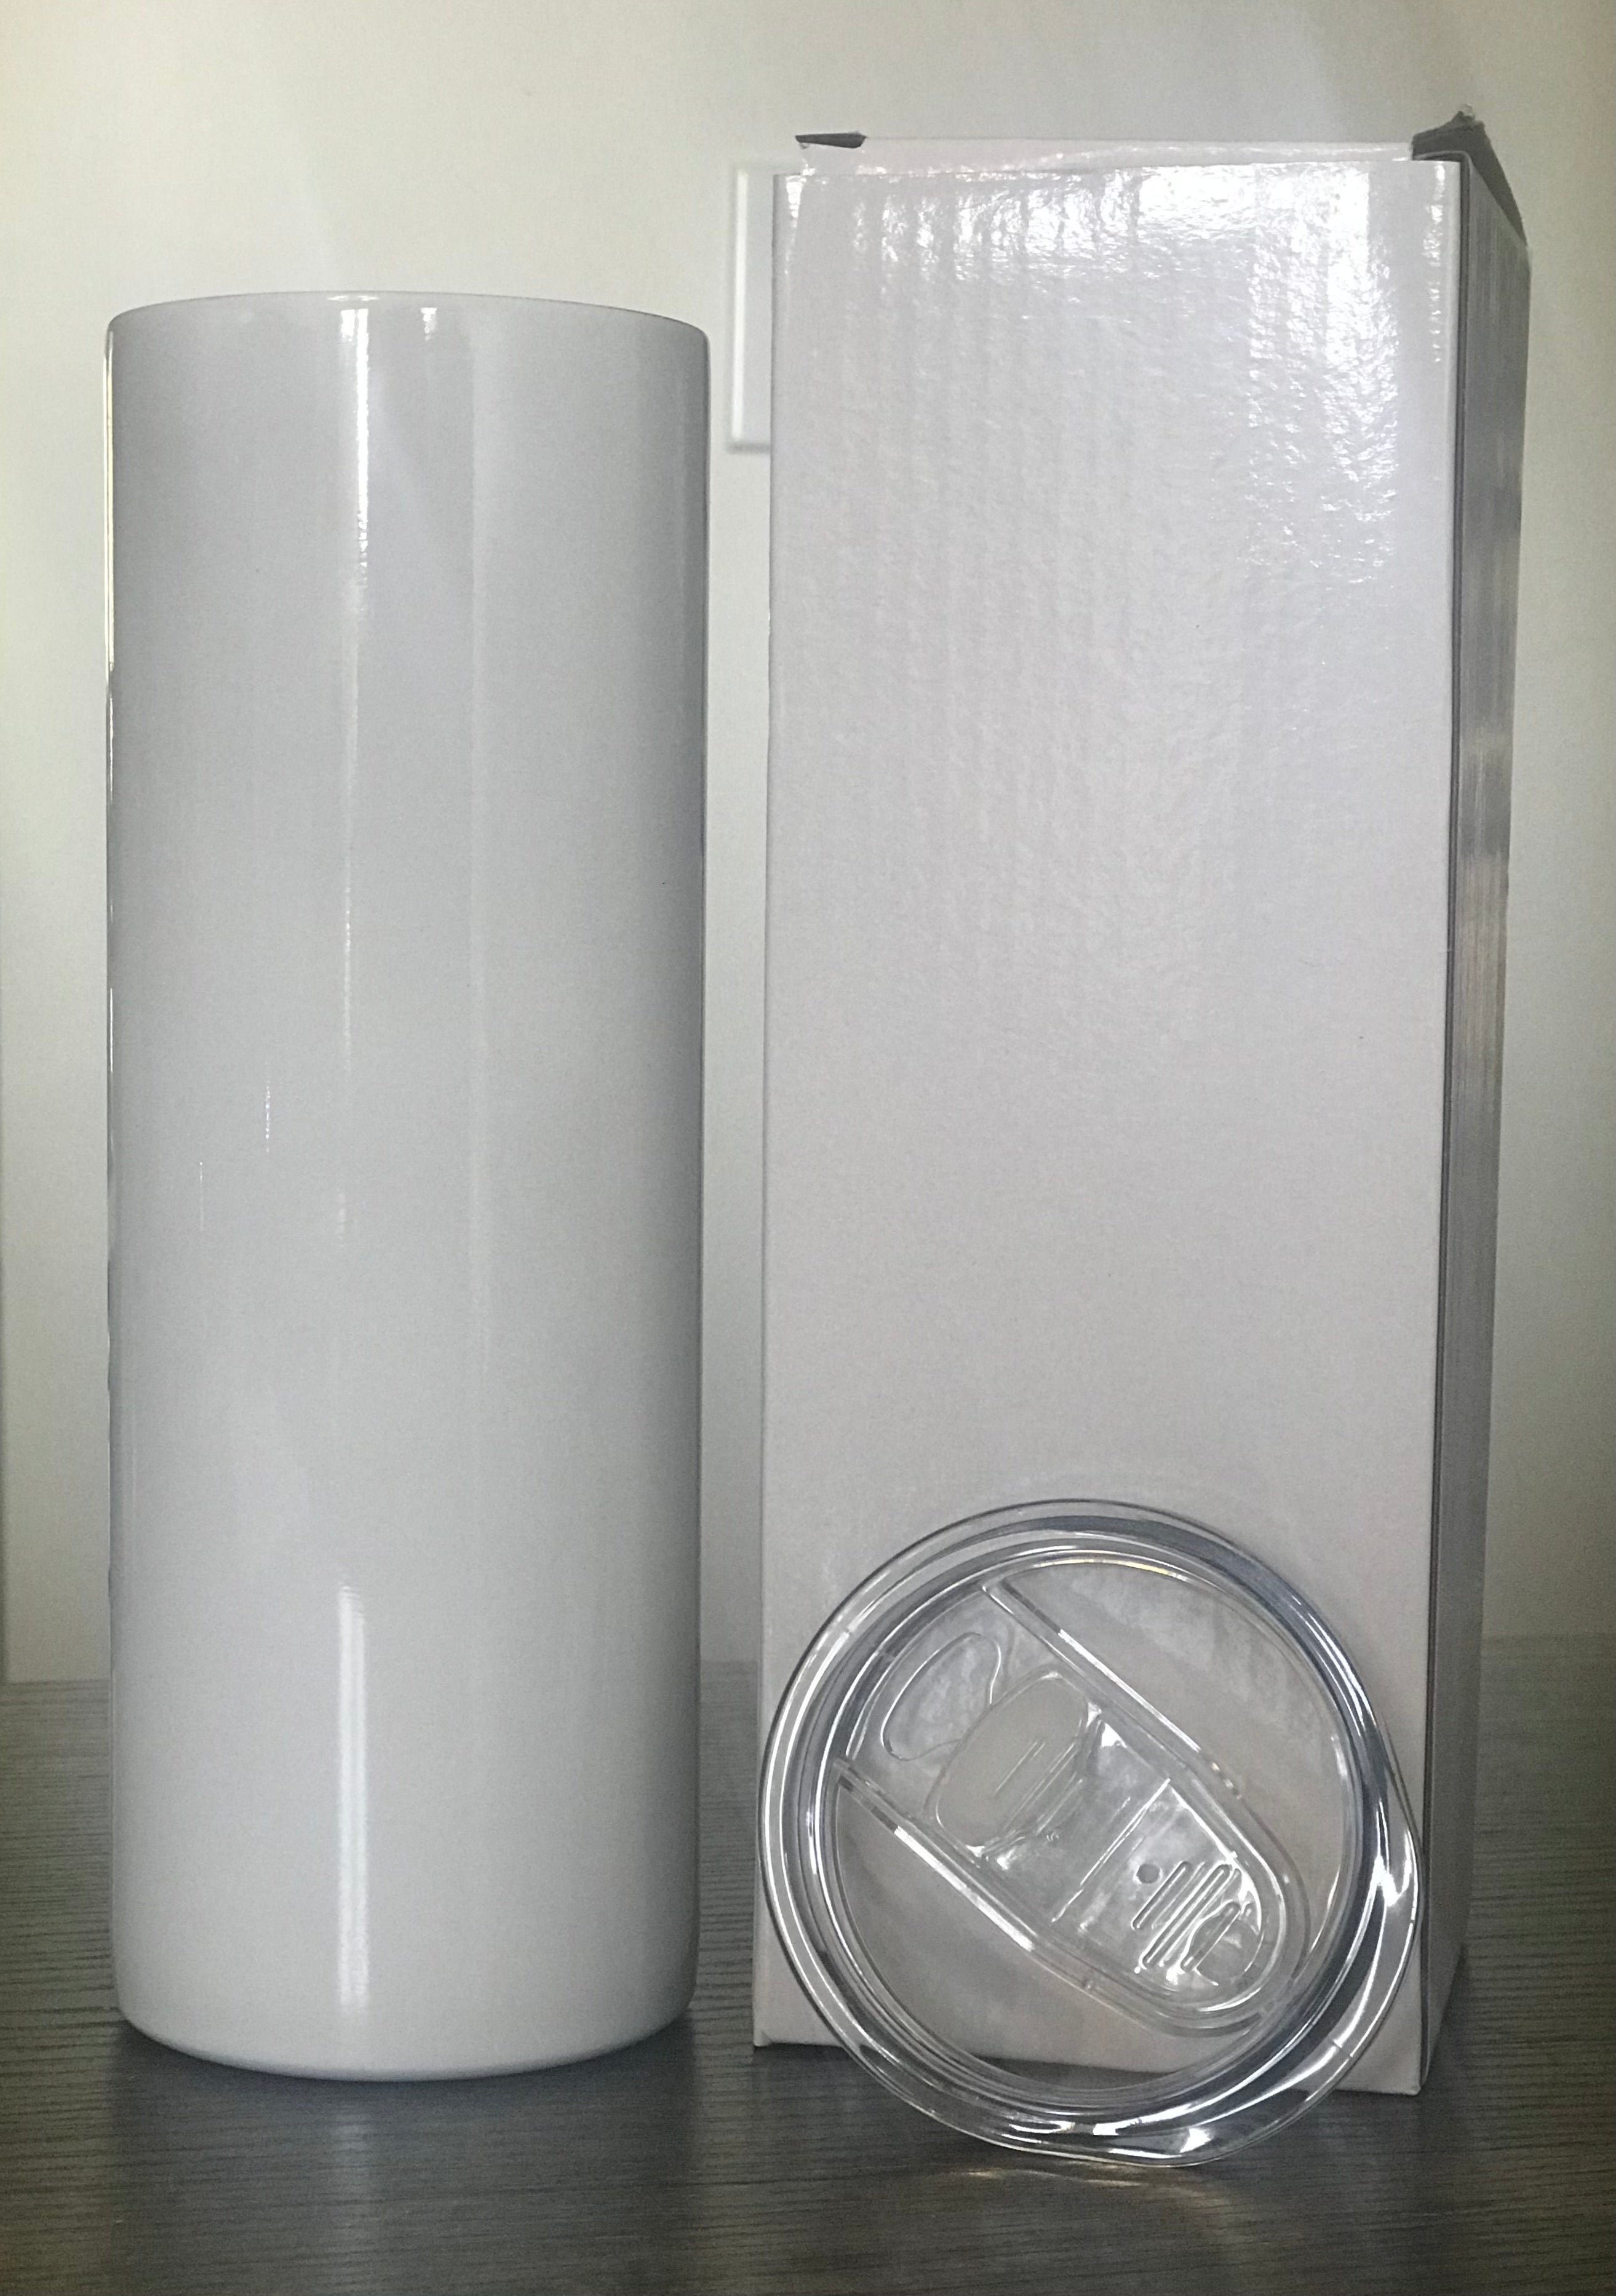 20 oz.  Slim White (Straight) Tumbler with Lid and Straw for Sublimation